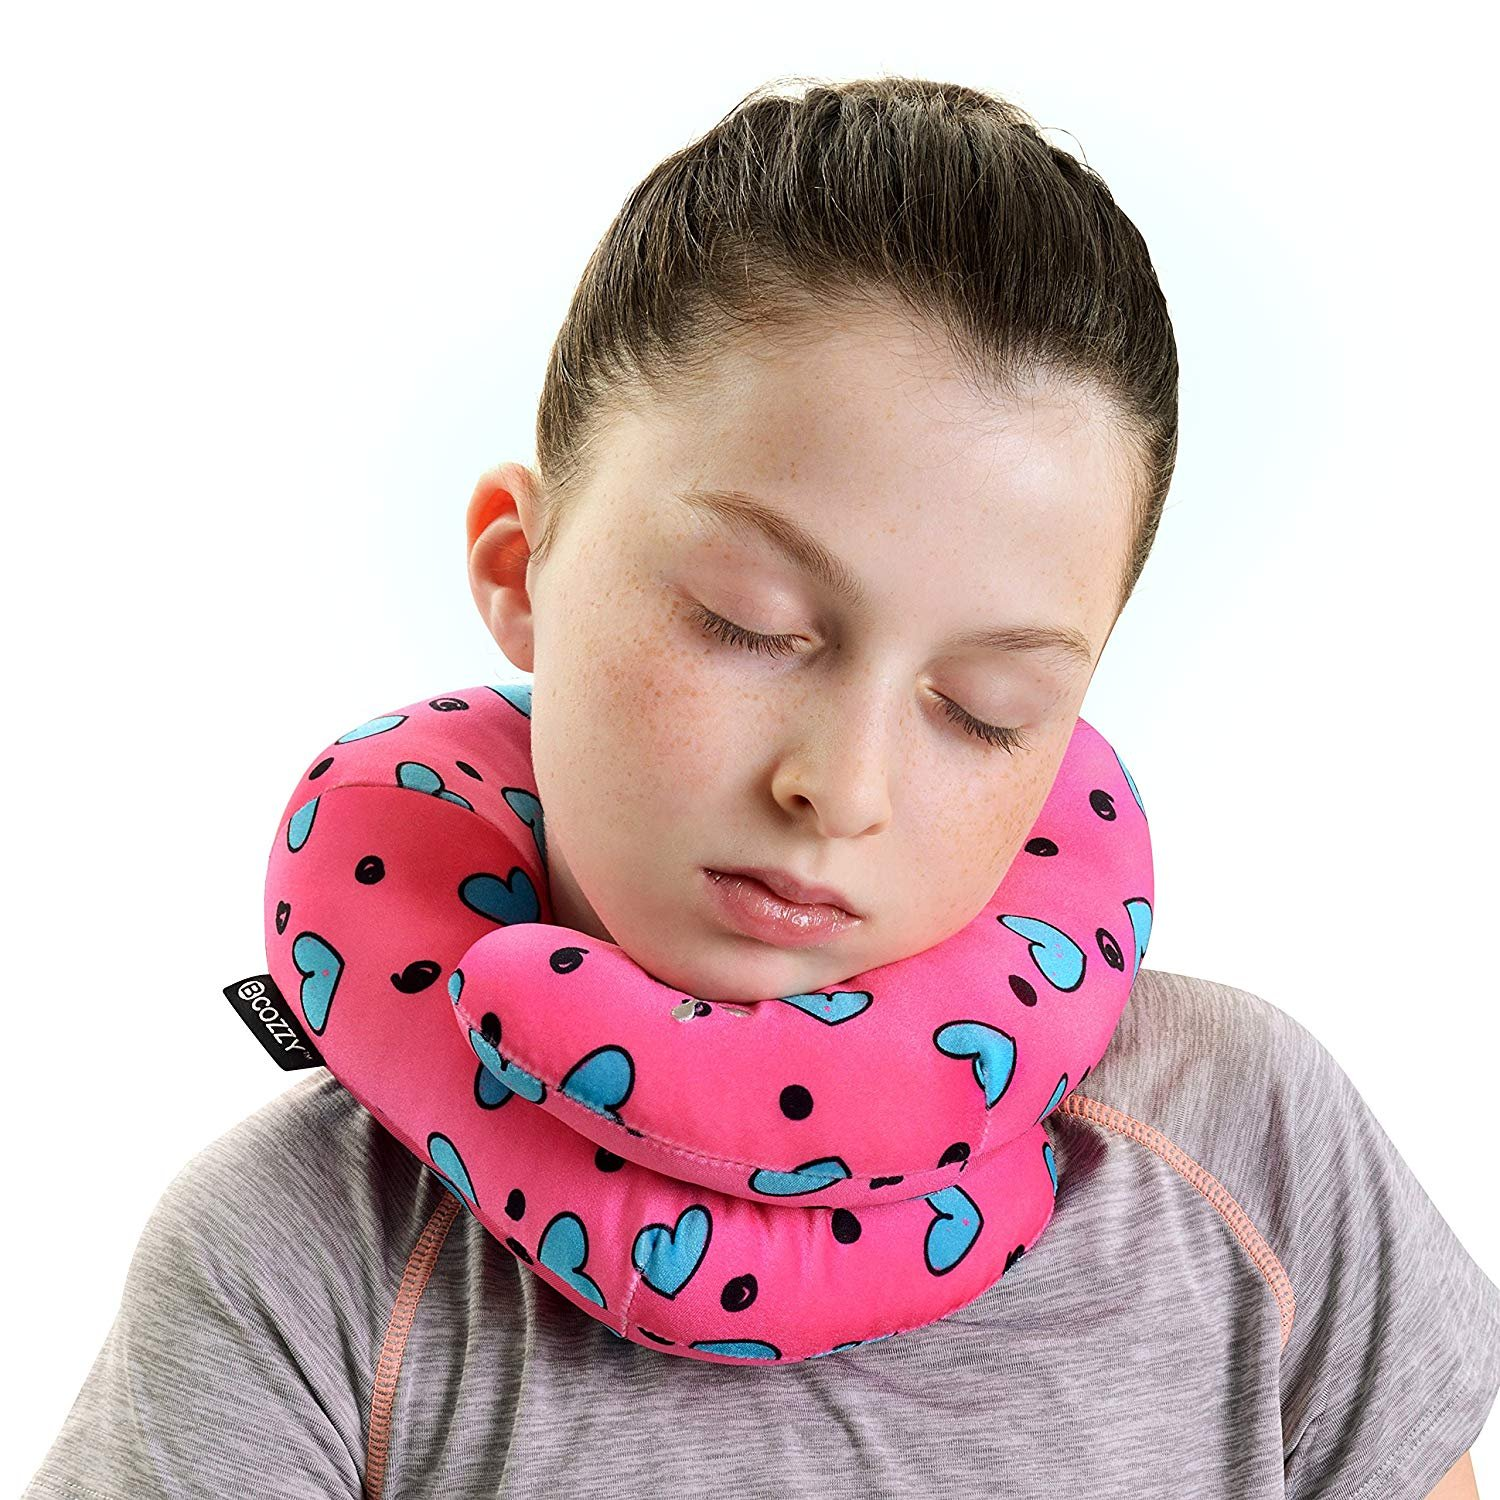 BCOZZY Kids Chin Supporting Travel Neck Pillow - Supports The Head, Neck Chin in in Any Sitting Position. A Patented Product. Child Size, Turquoise Hearts by BCOZZY (Image #2)